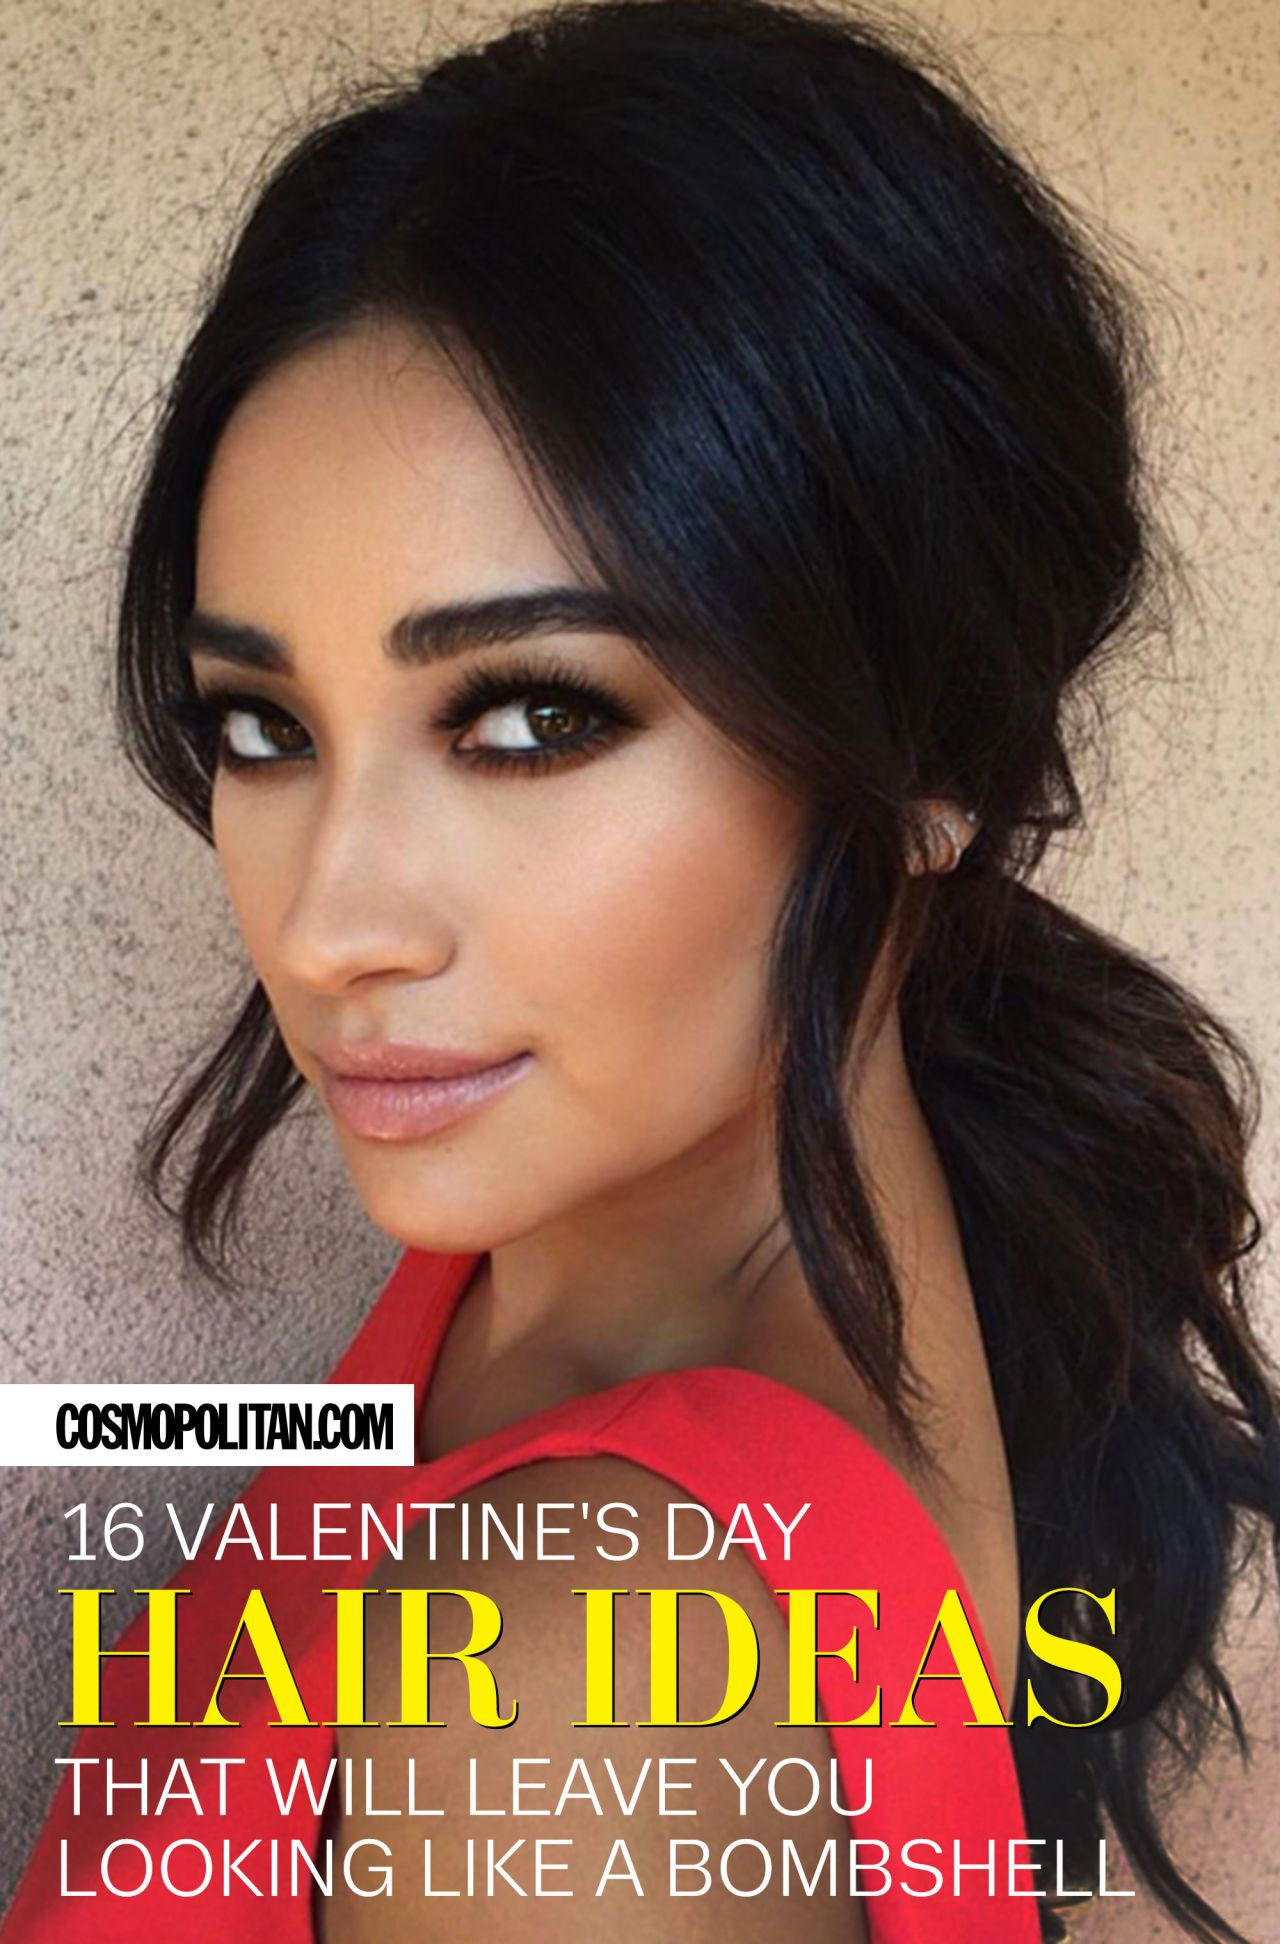 16 valentine's day hair ideas that will leave you looking like a